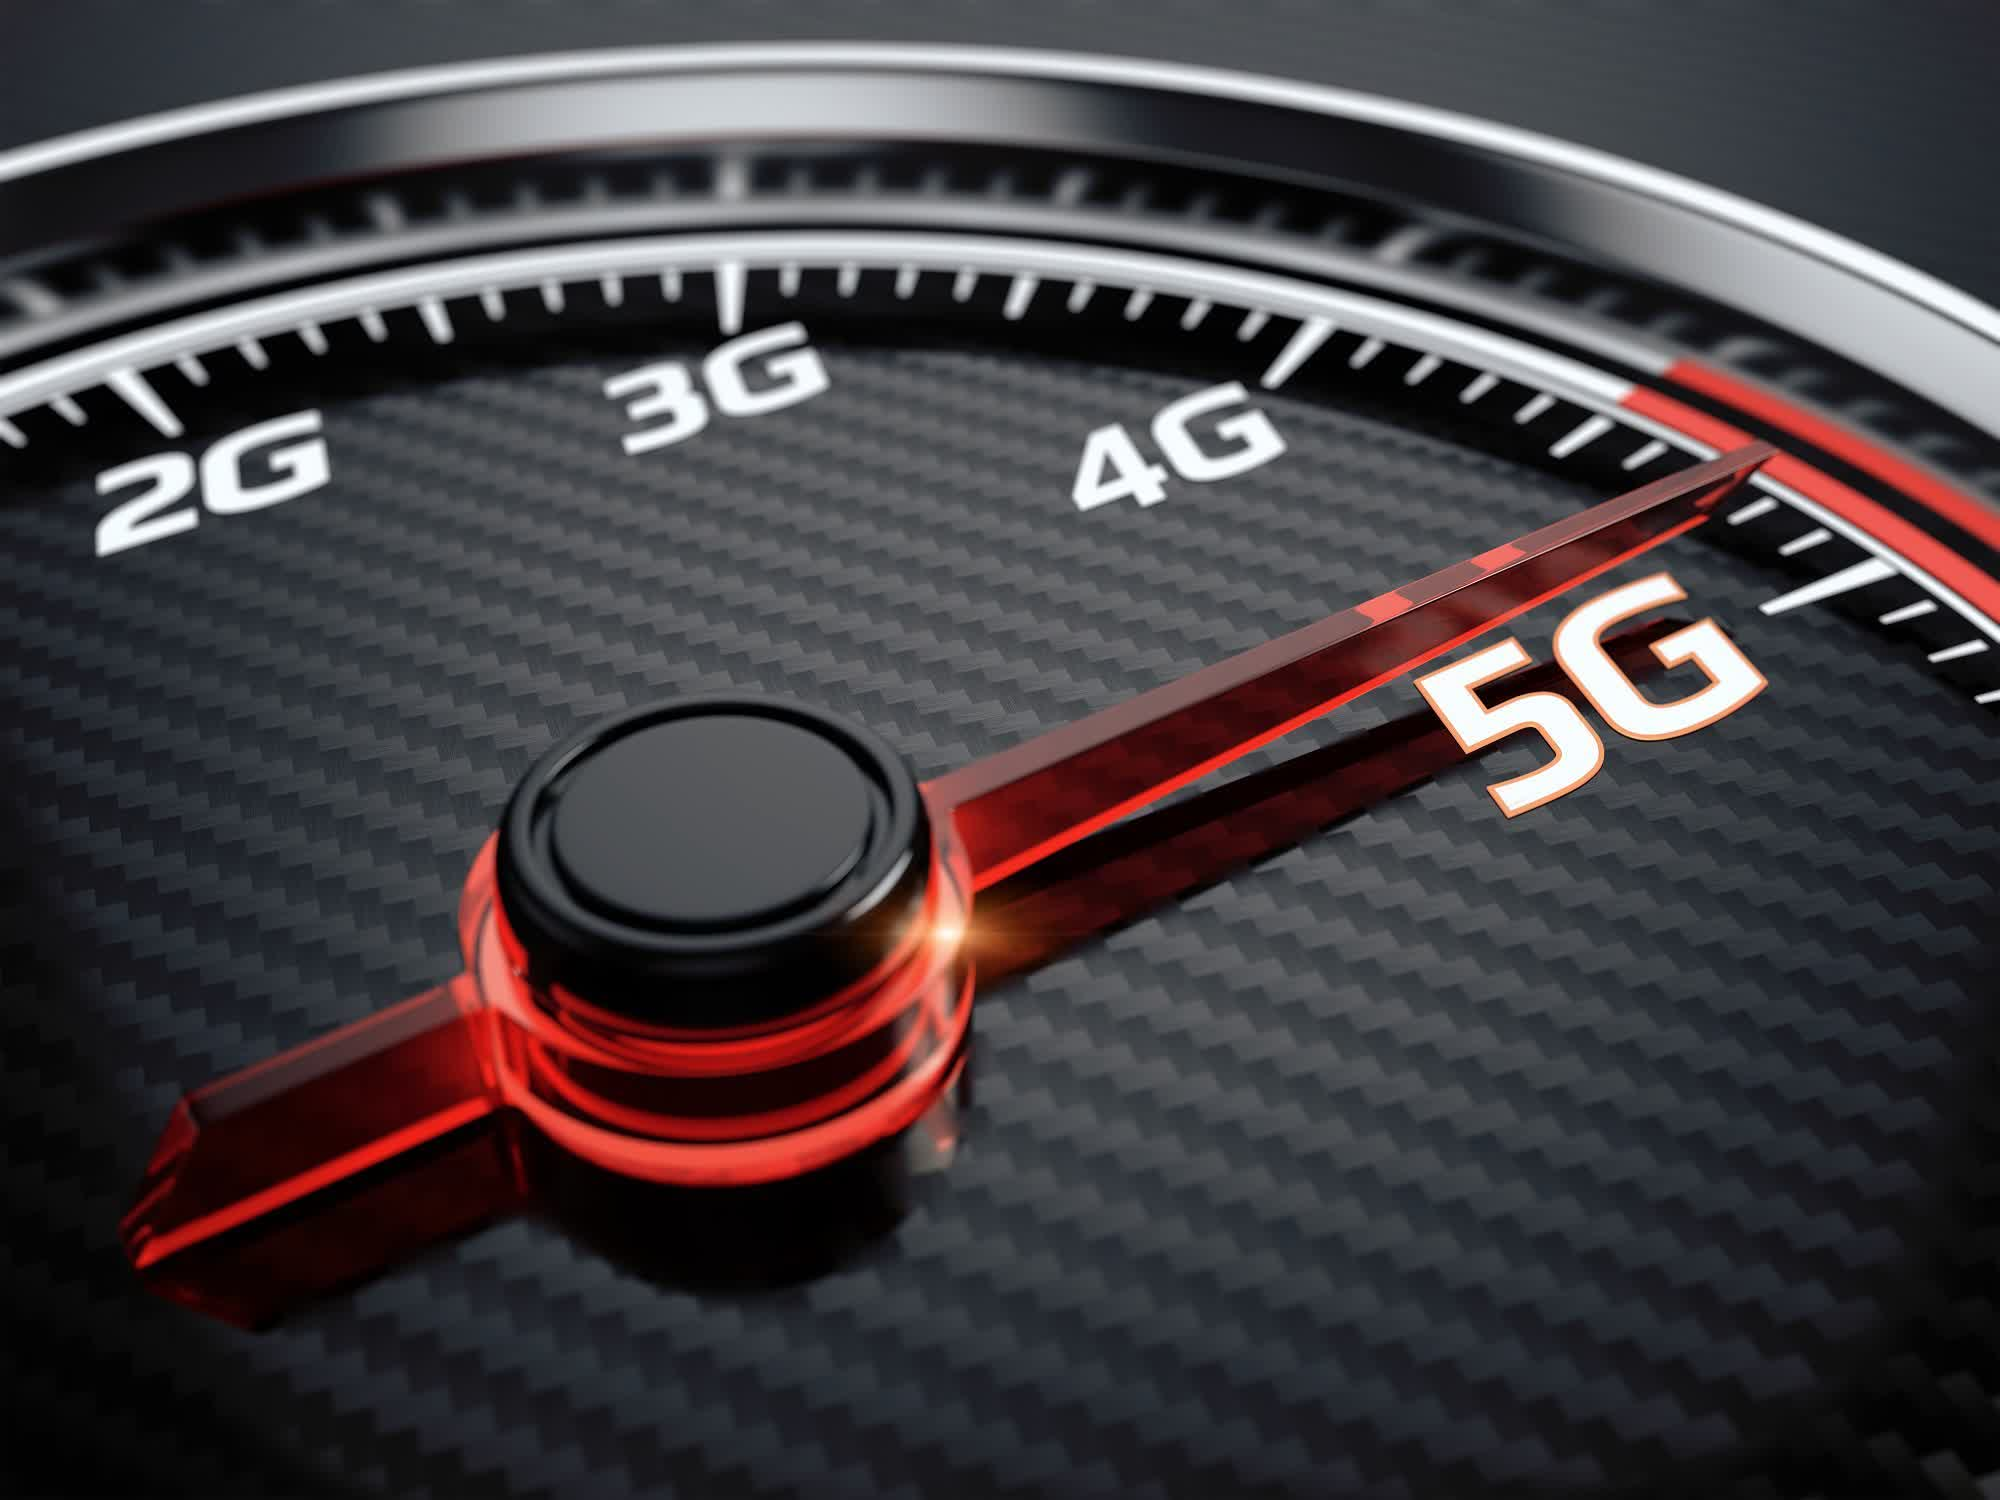 Report on countries' average 5G speeds places the US last